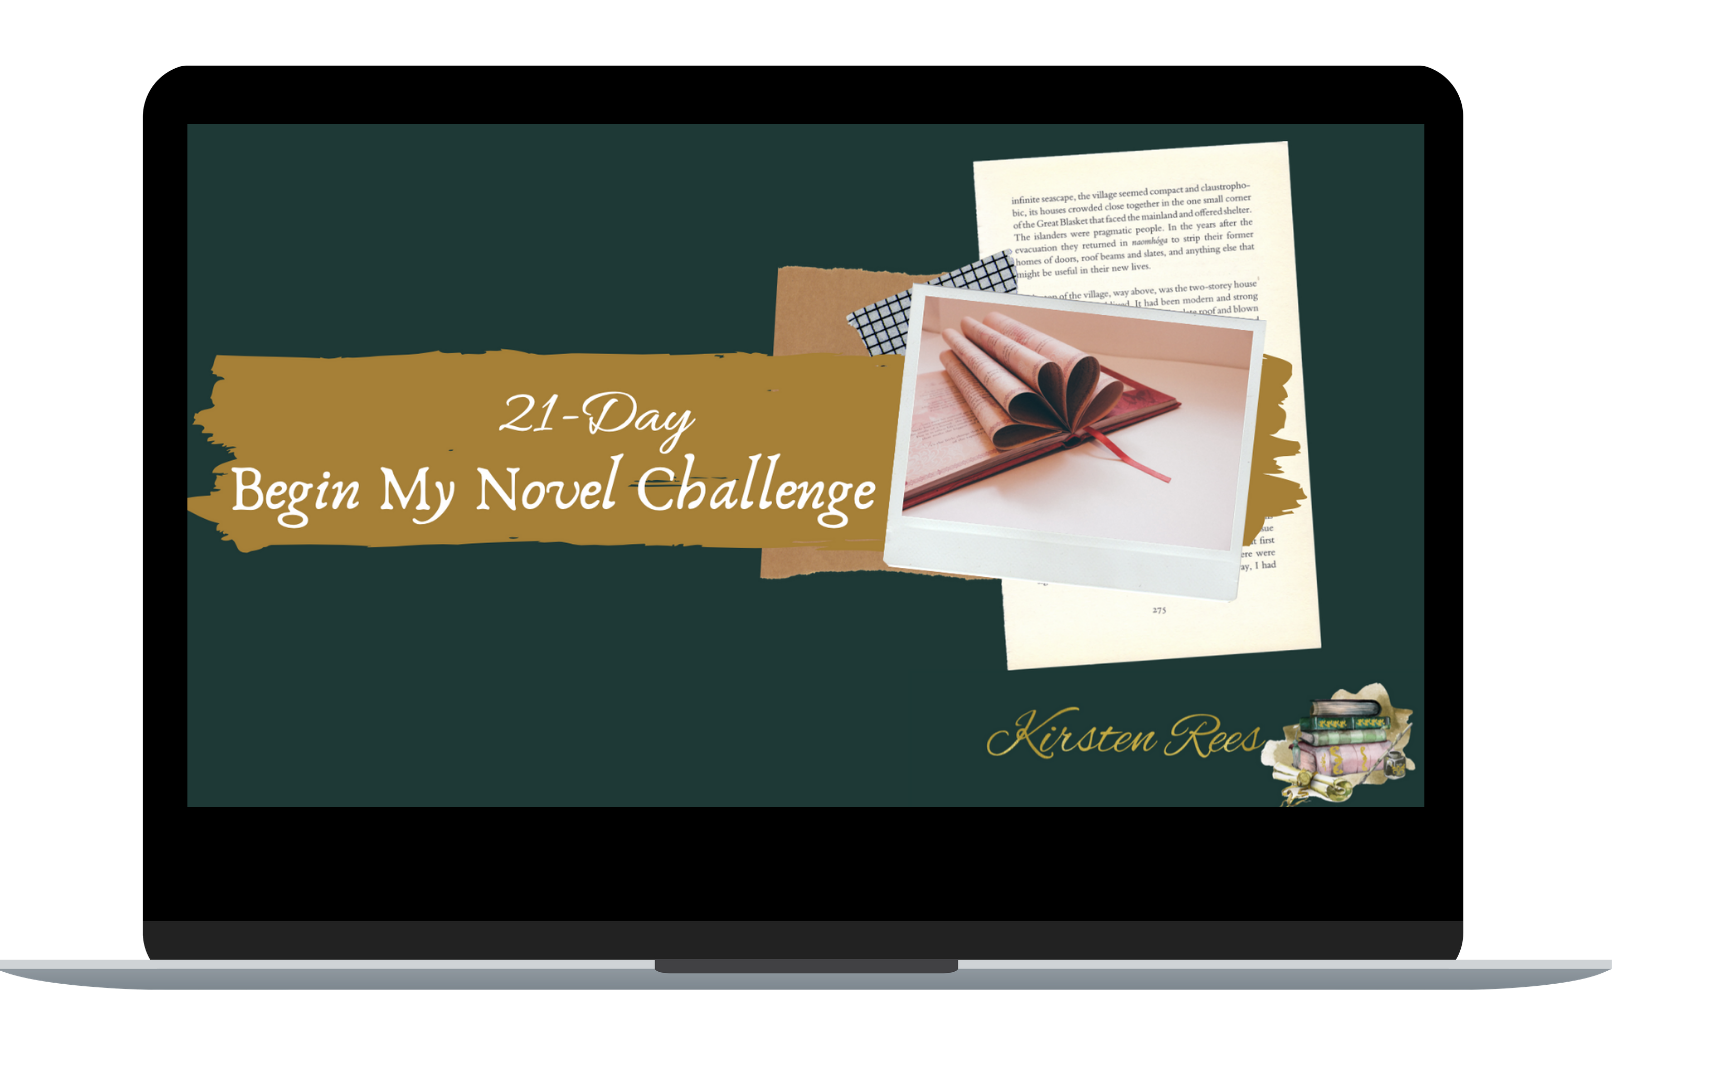 How to write my first novel - author challenge